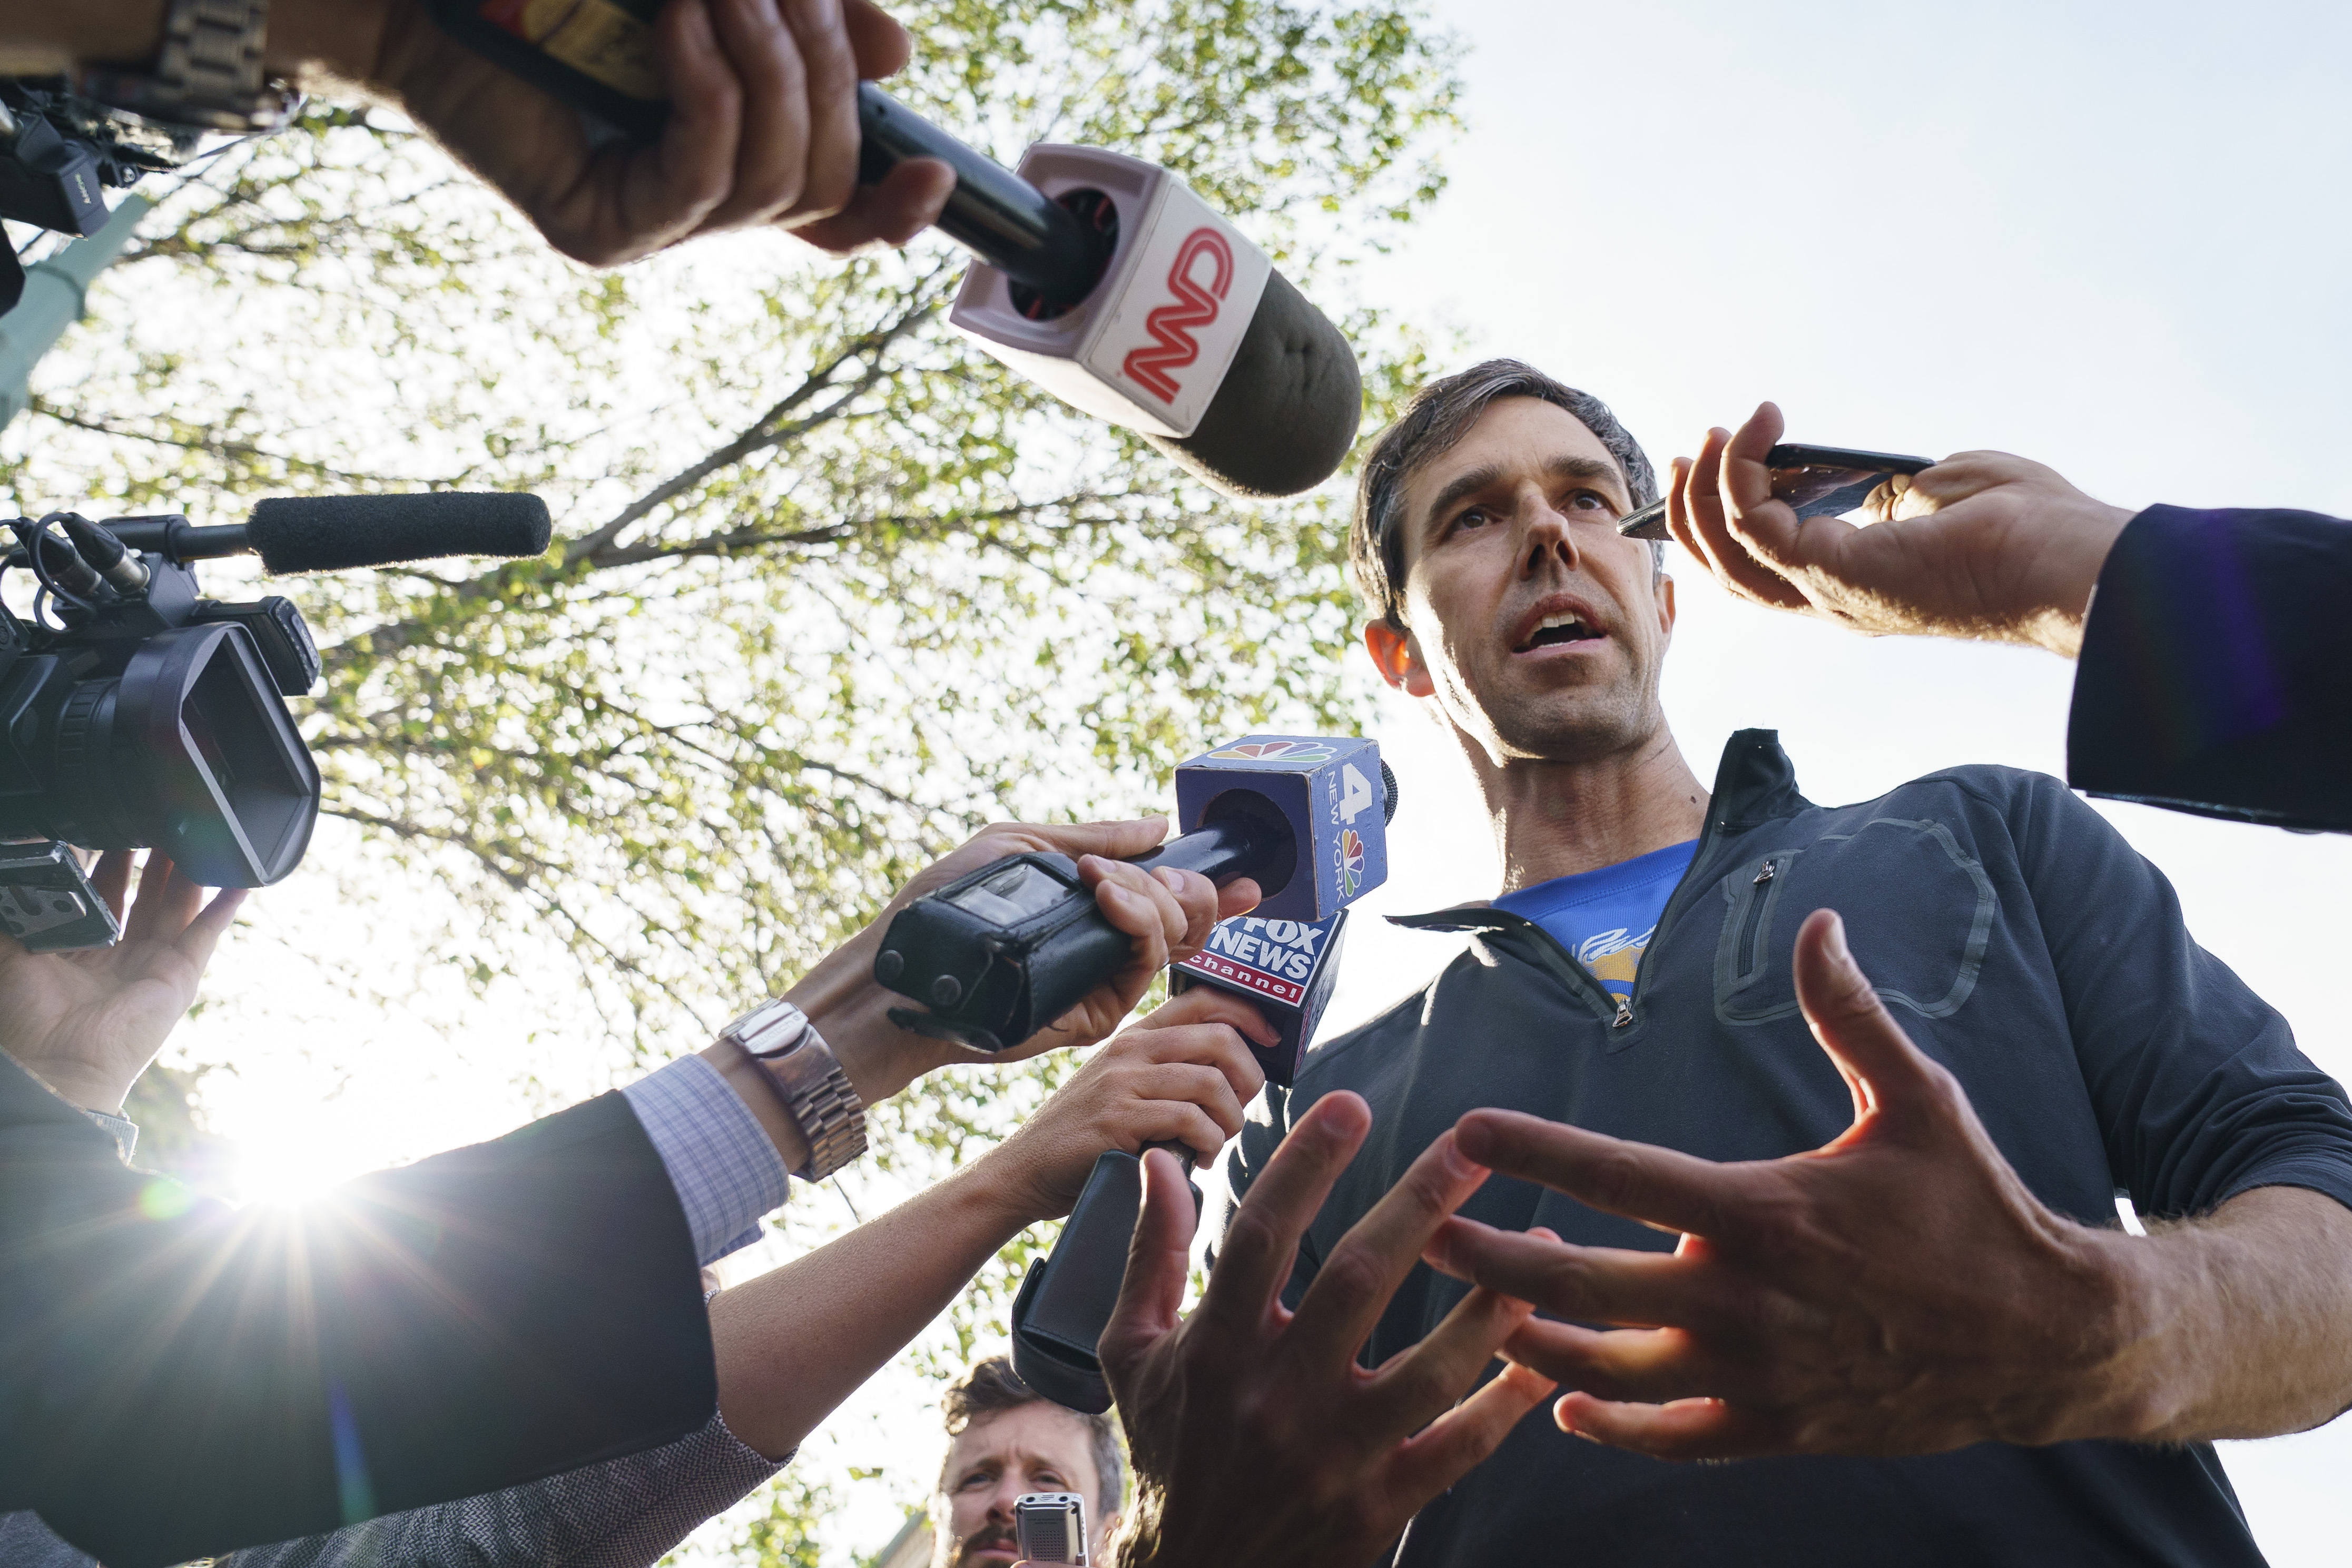 NEW YORK, NY - JUNE 12: Democratic presidential candidate and former U.S. Rep. Beto O'Rourke speaks to the press after taking part in a Pride month run, June 12, 2019 in New York City. On Wednesday, O'Rourke pledged to reverse President Donald Trump's restrictions on transgender people serving in the military and push for passage of the Equality Act if elected president. (Photo by Drew Angerer/Getty Images)